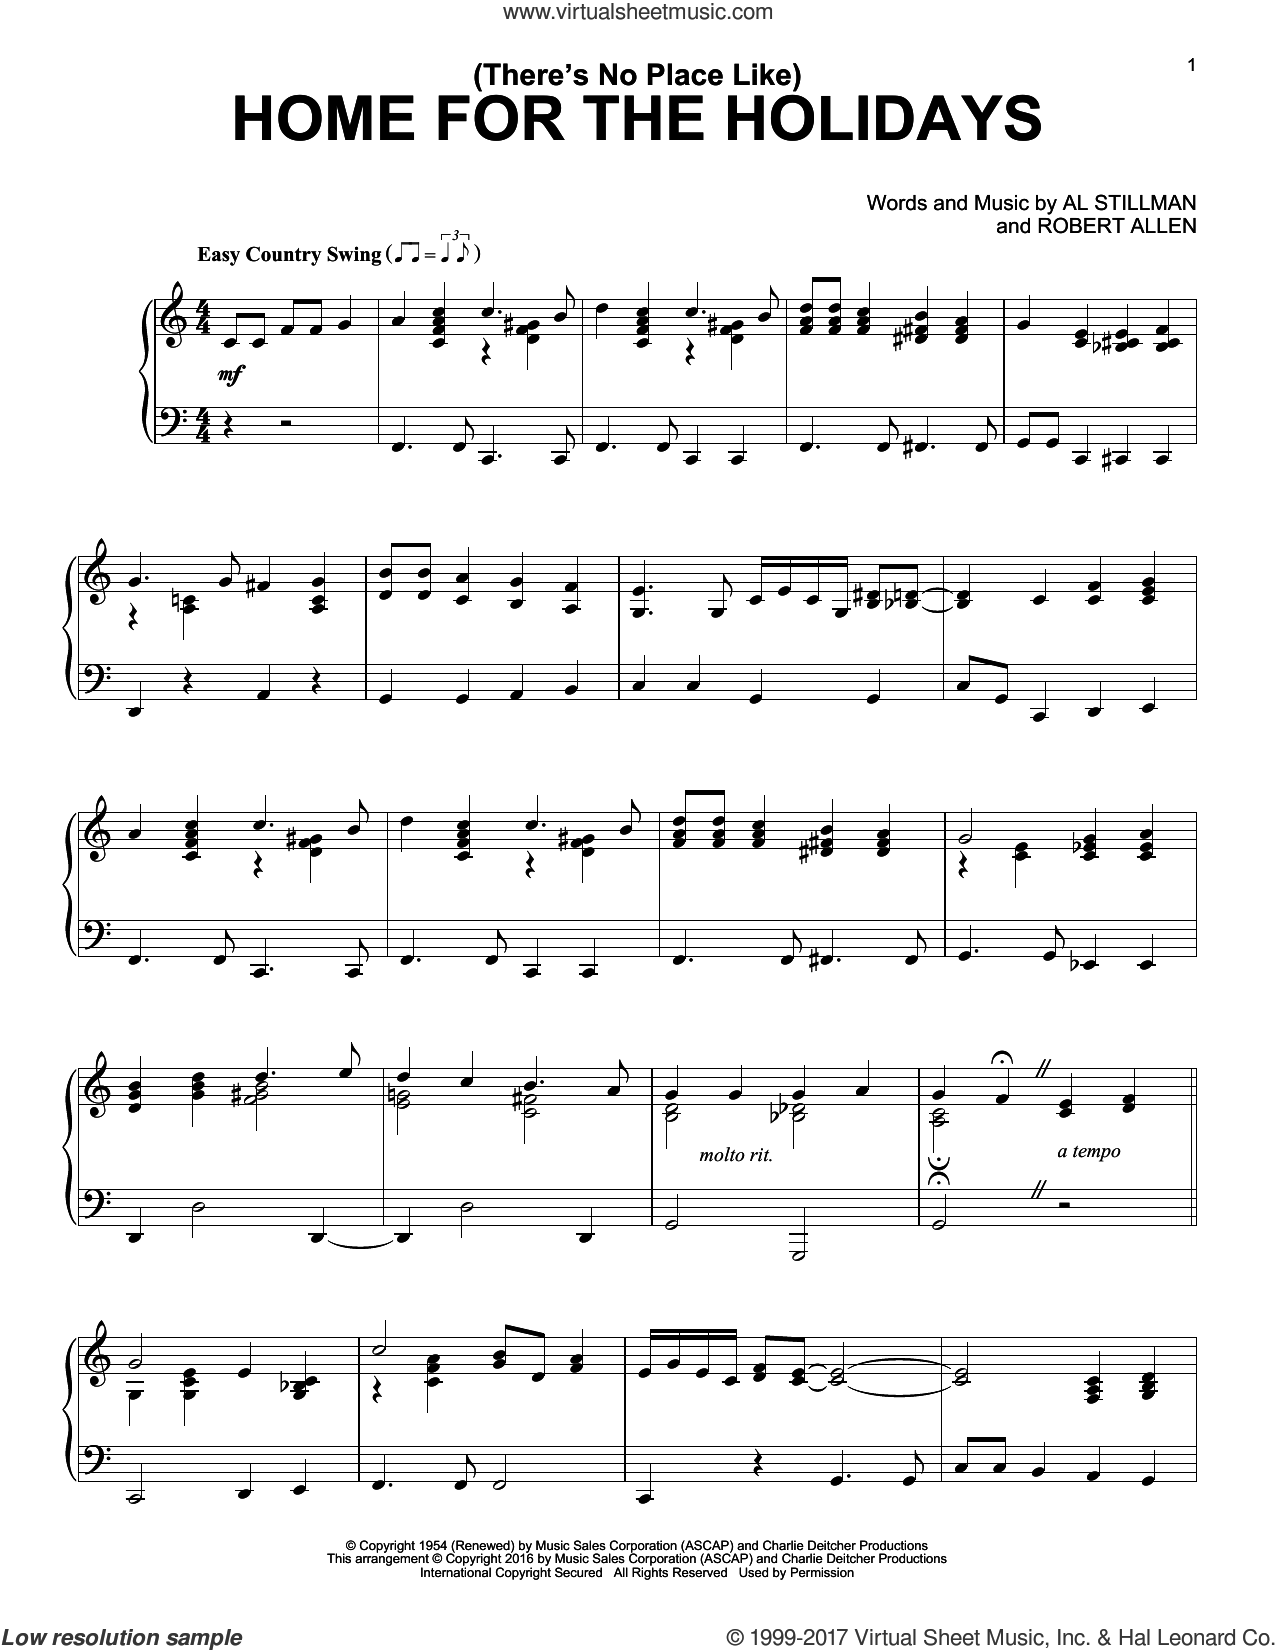 (There's No Place Like) Home For The Holidays sheet music for piano solo by Perry Como, Al Stillman and Robert Allen, intermediate skill level